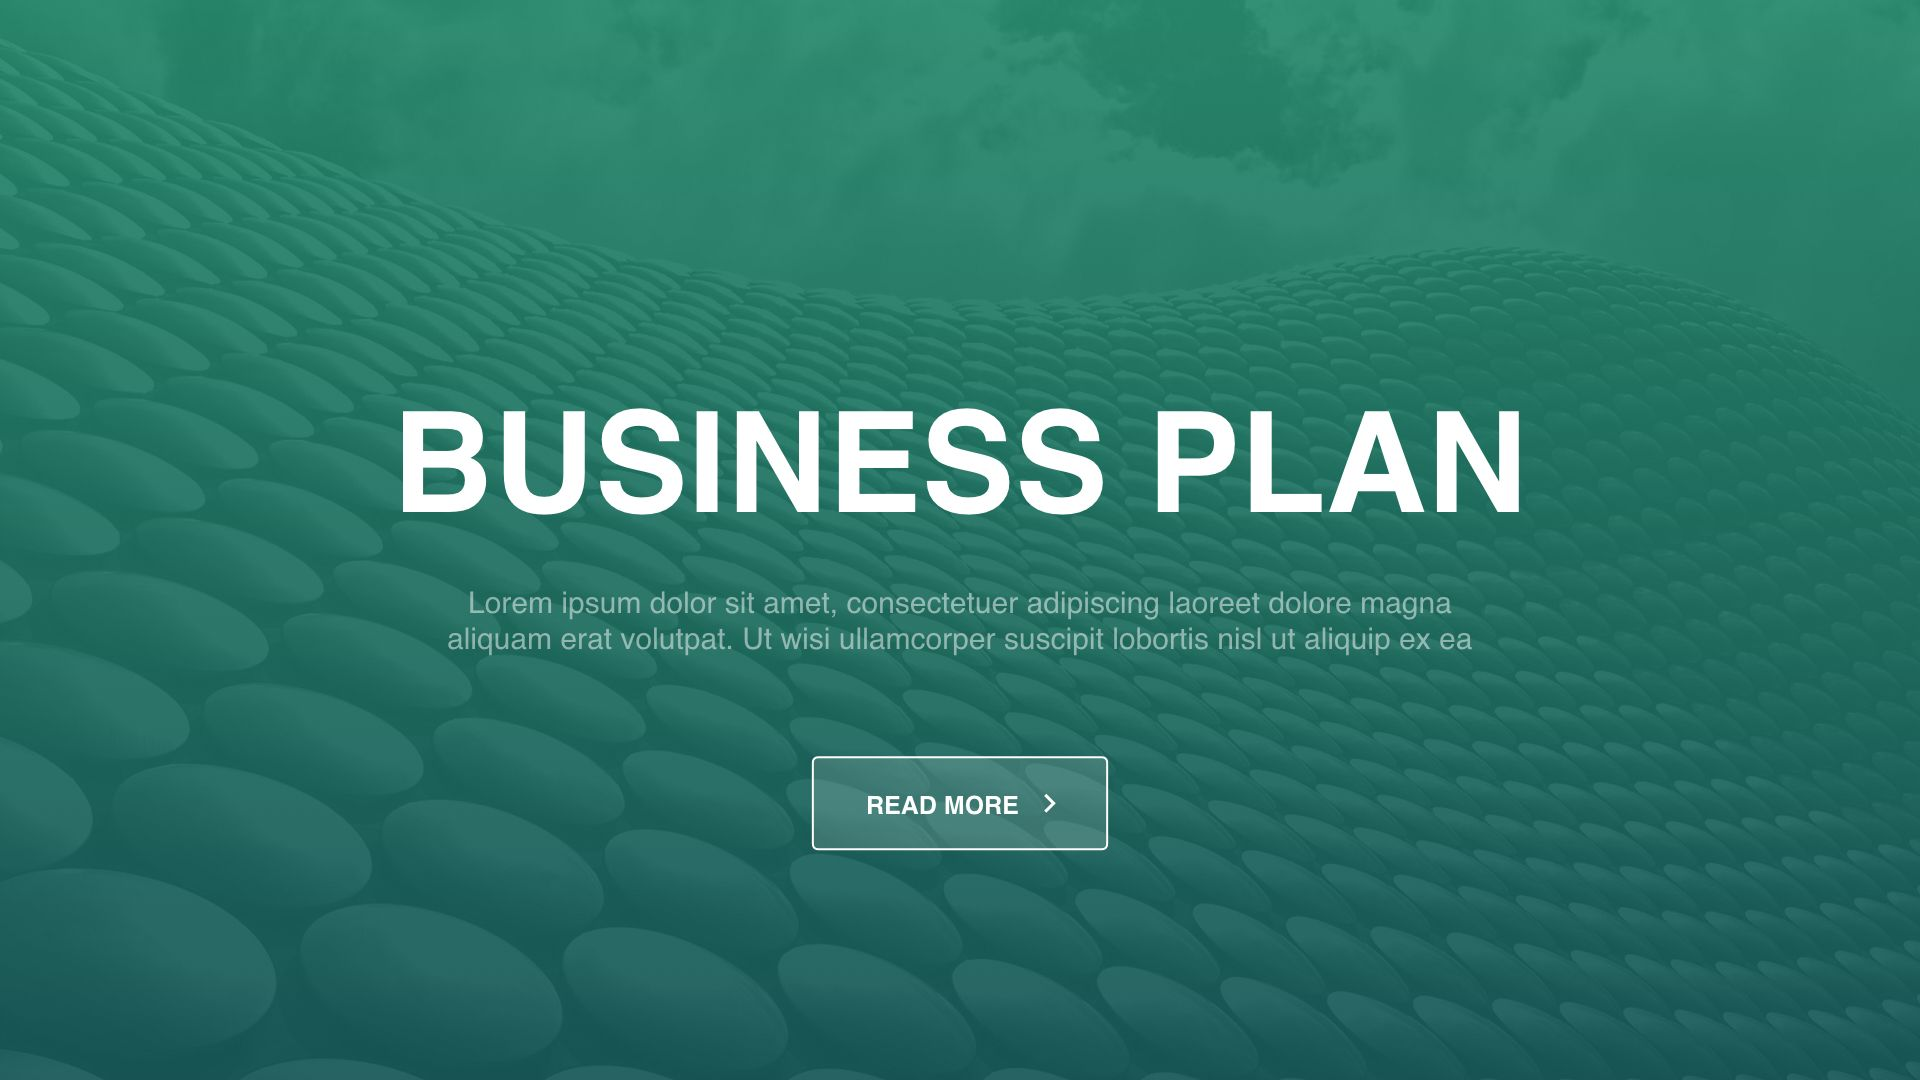 Business Plan Free Keynote Template DOWNLOAD LINK Httpshislide - Business plan free template download